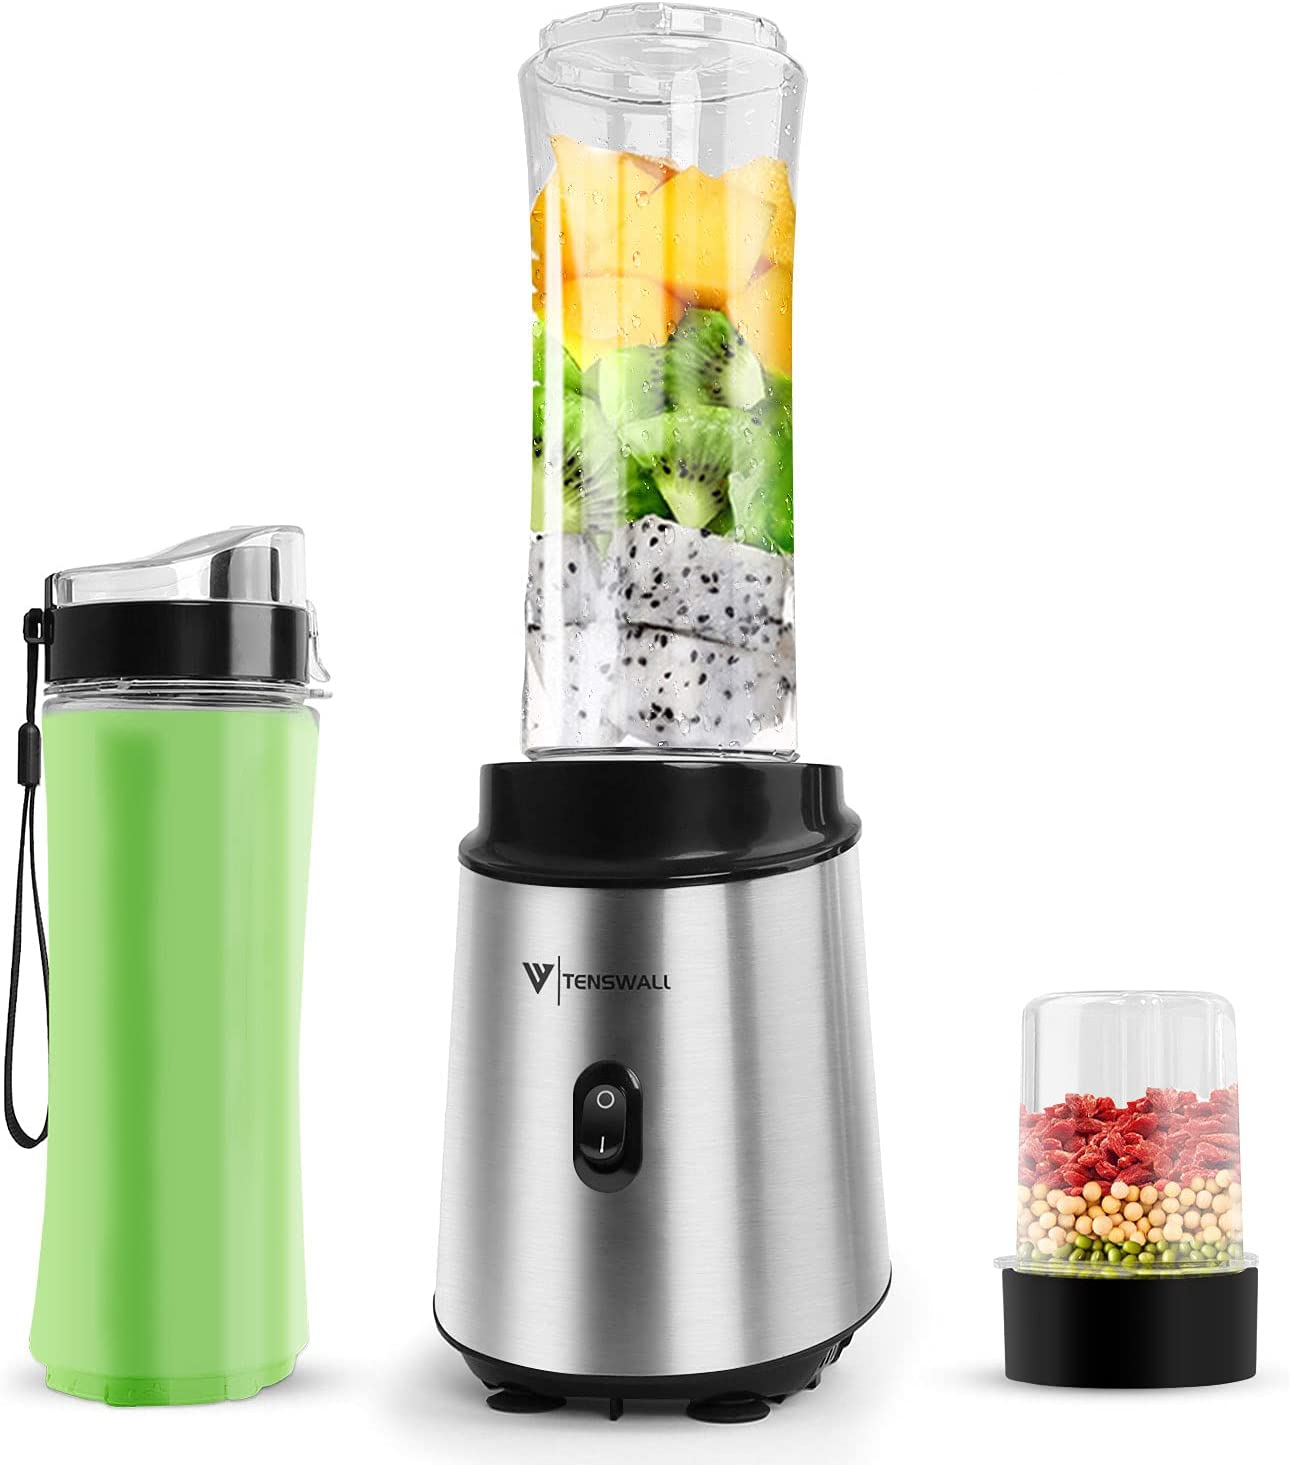 Personal Shakes Smoothies Blender juicer - Small Frozen Food and Vegetable Fruit Electric Mix Processor with 2x600 Juicer Cup and One Grind Bottle & Kitchen Travel Stainless(Tenswall series of)